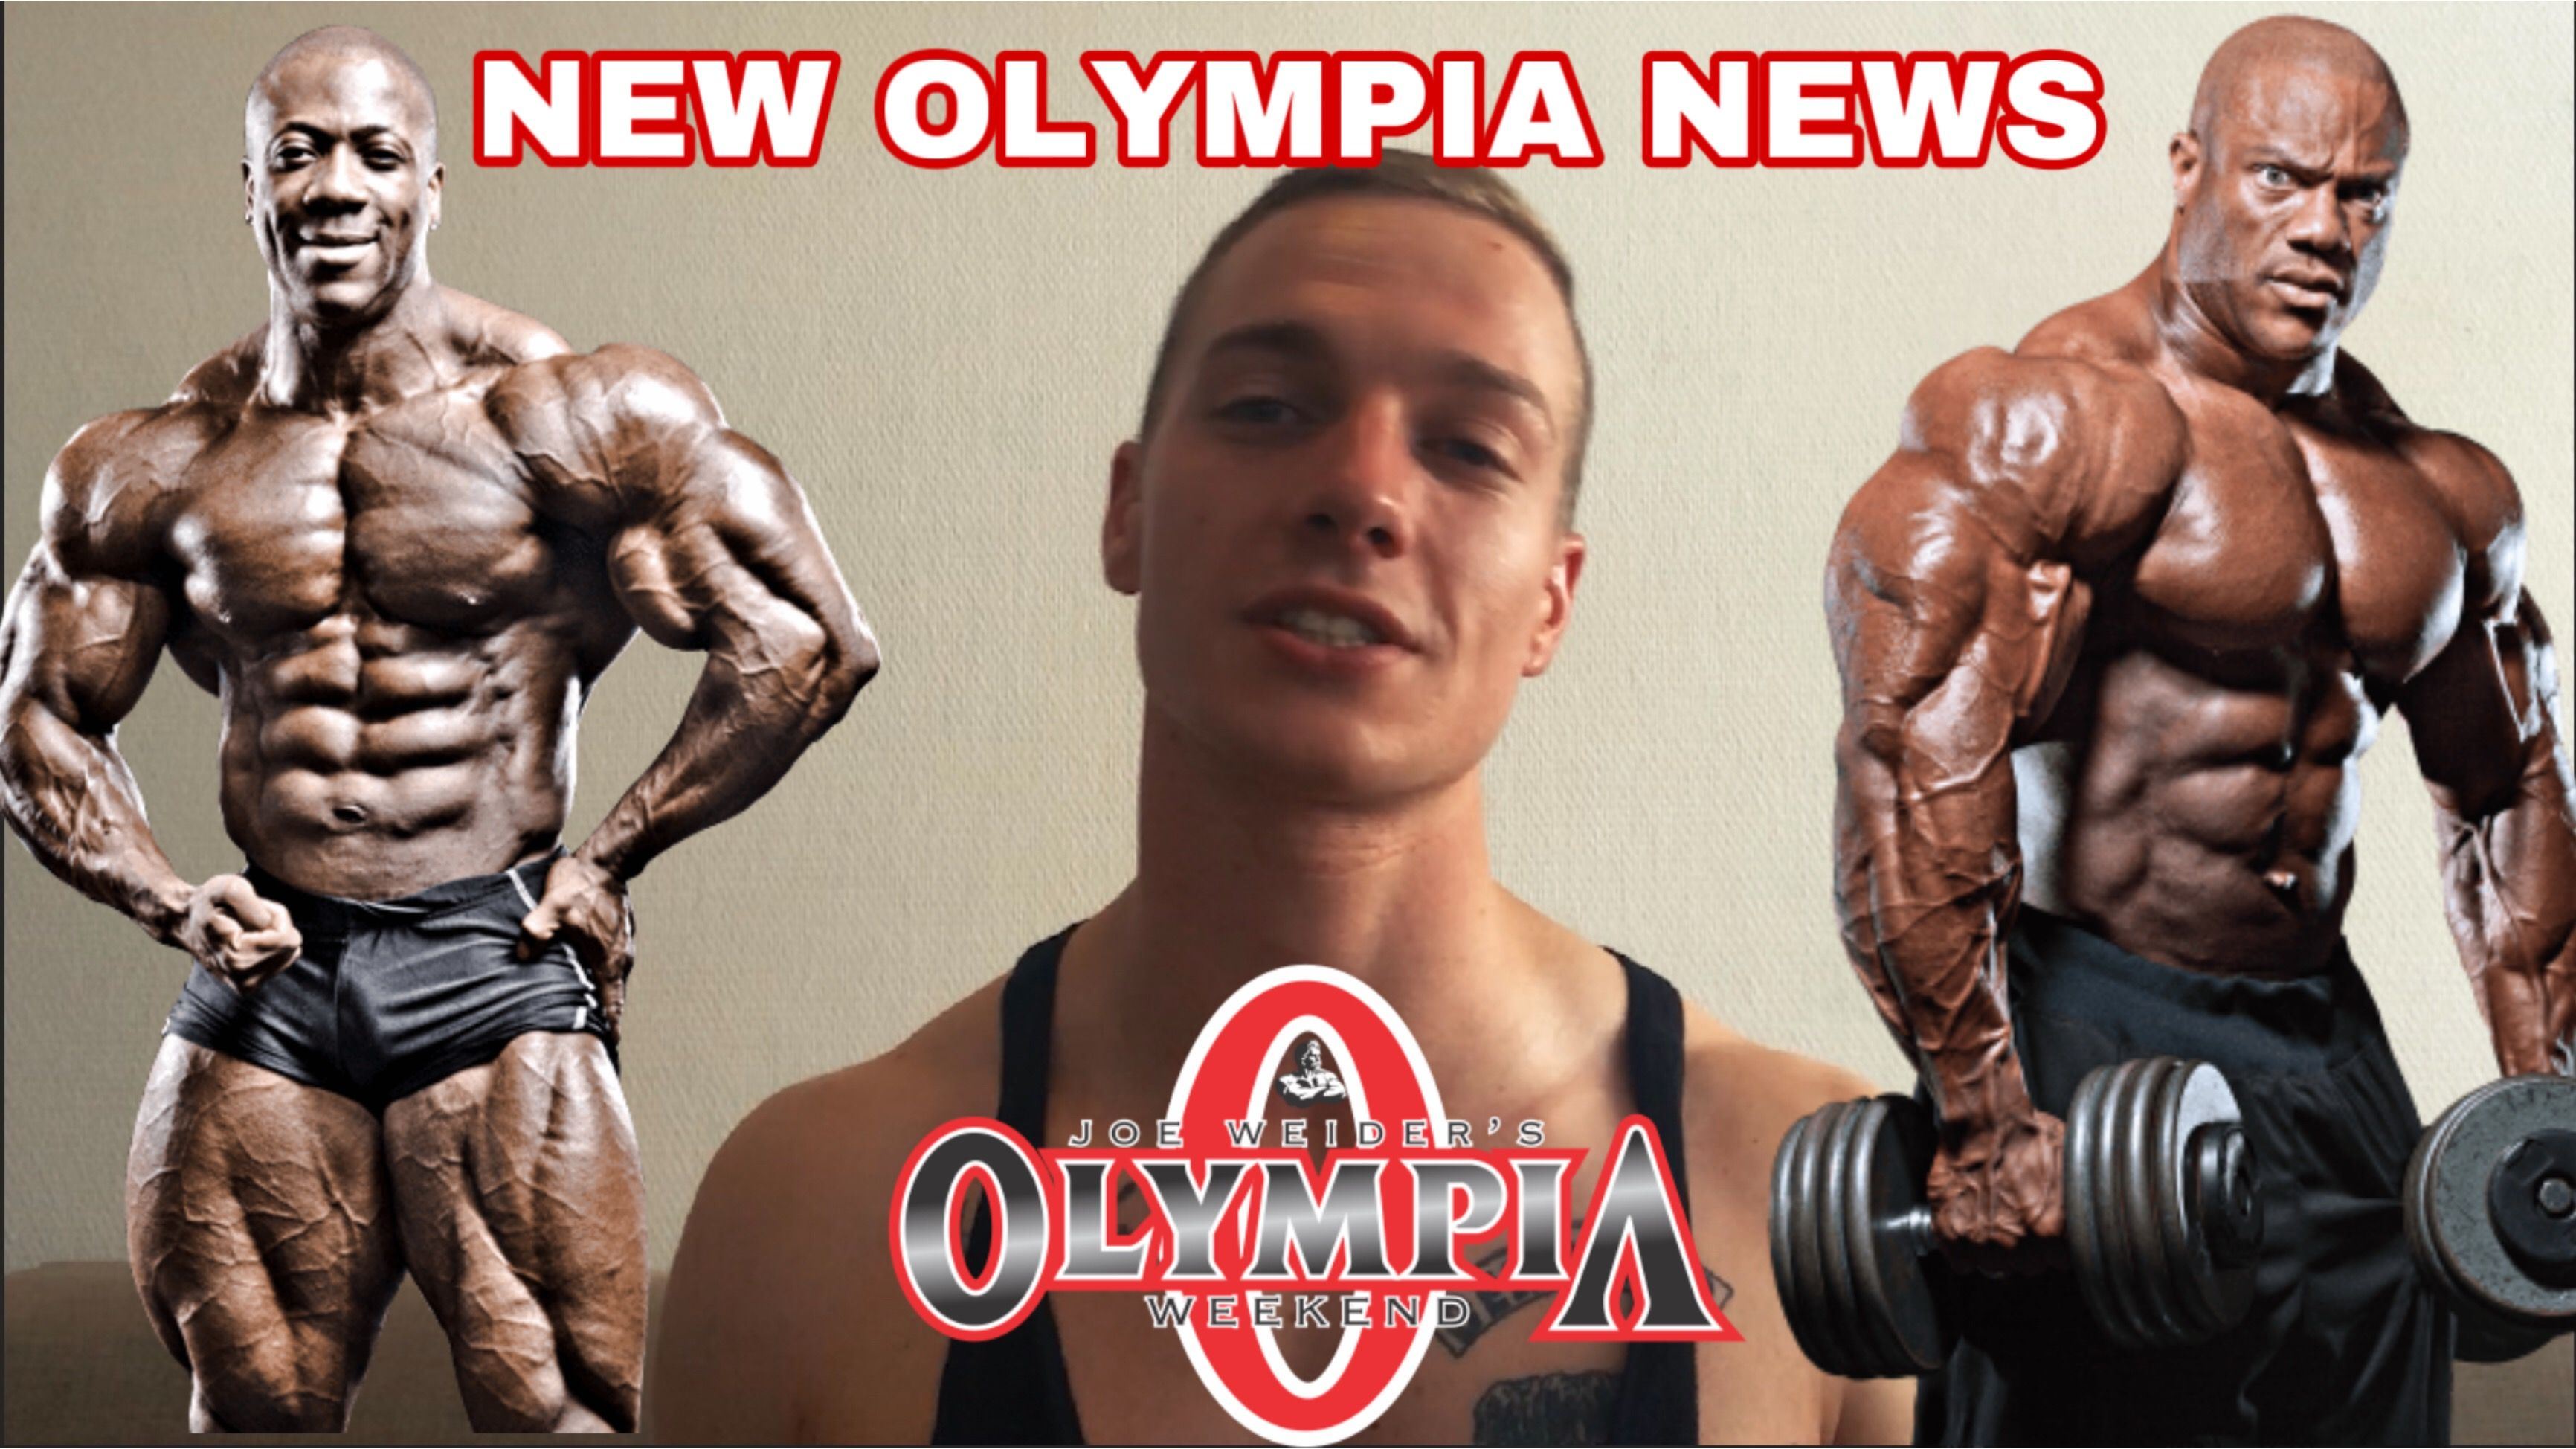 OLYMPIA 19 Talk | NEW UPDATES  | 7 WEEKS OUT | SHAWN RHODEN and Phil Heath ? | TOP 3 #philheath